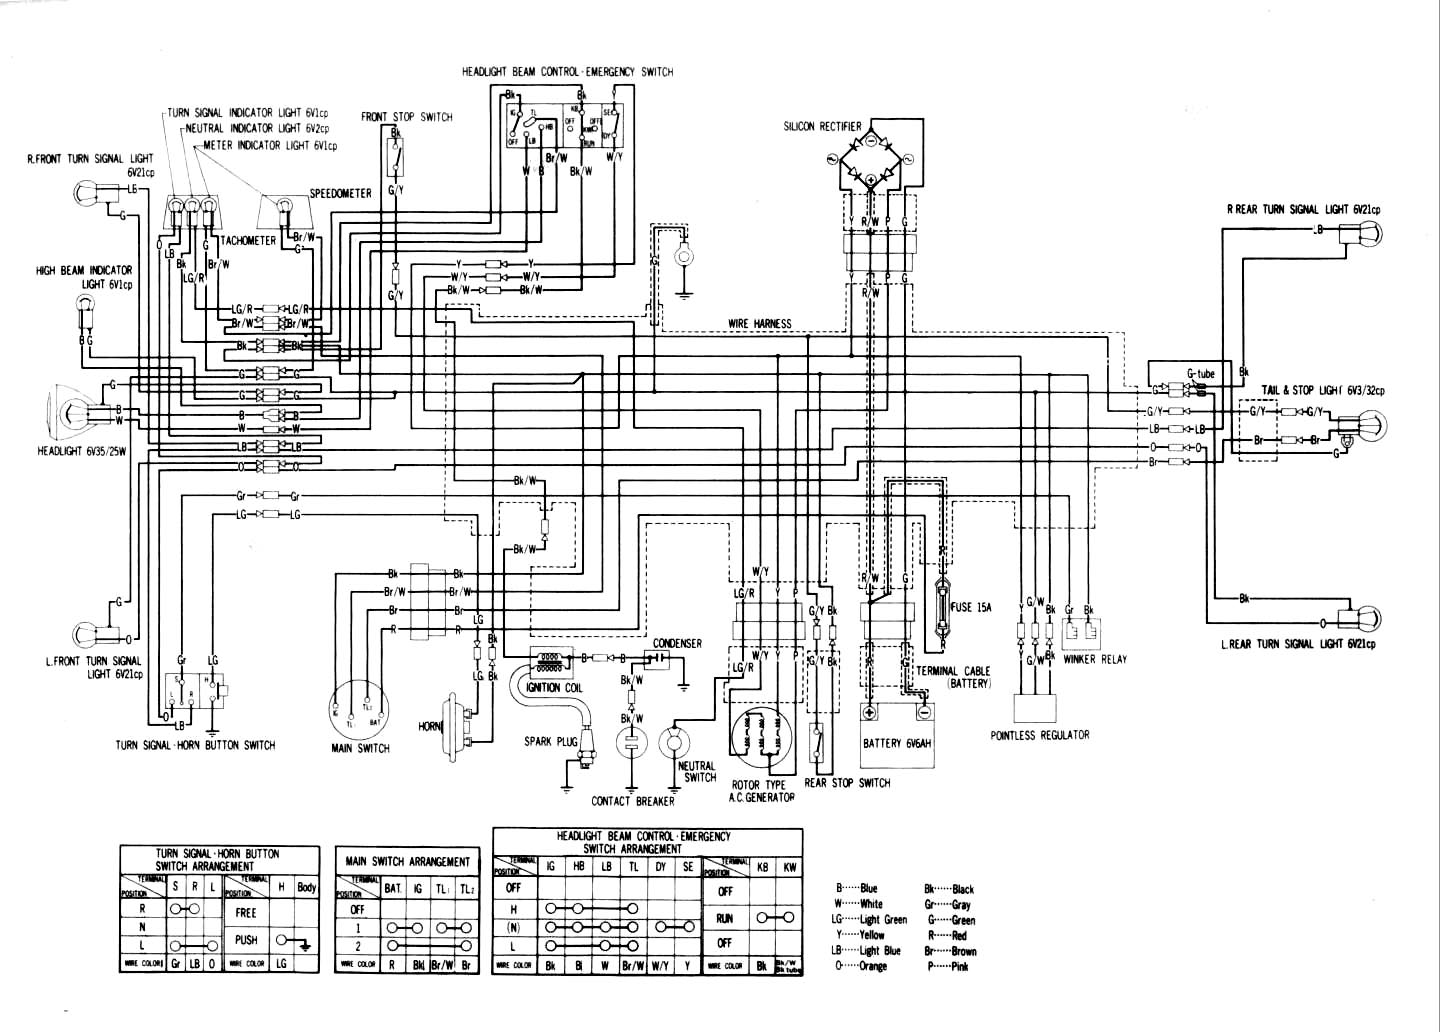 xl175 wiring diagrams 1974 honda cb550 wiring diagram at virtualis.co